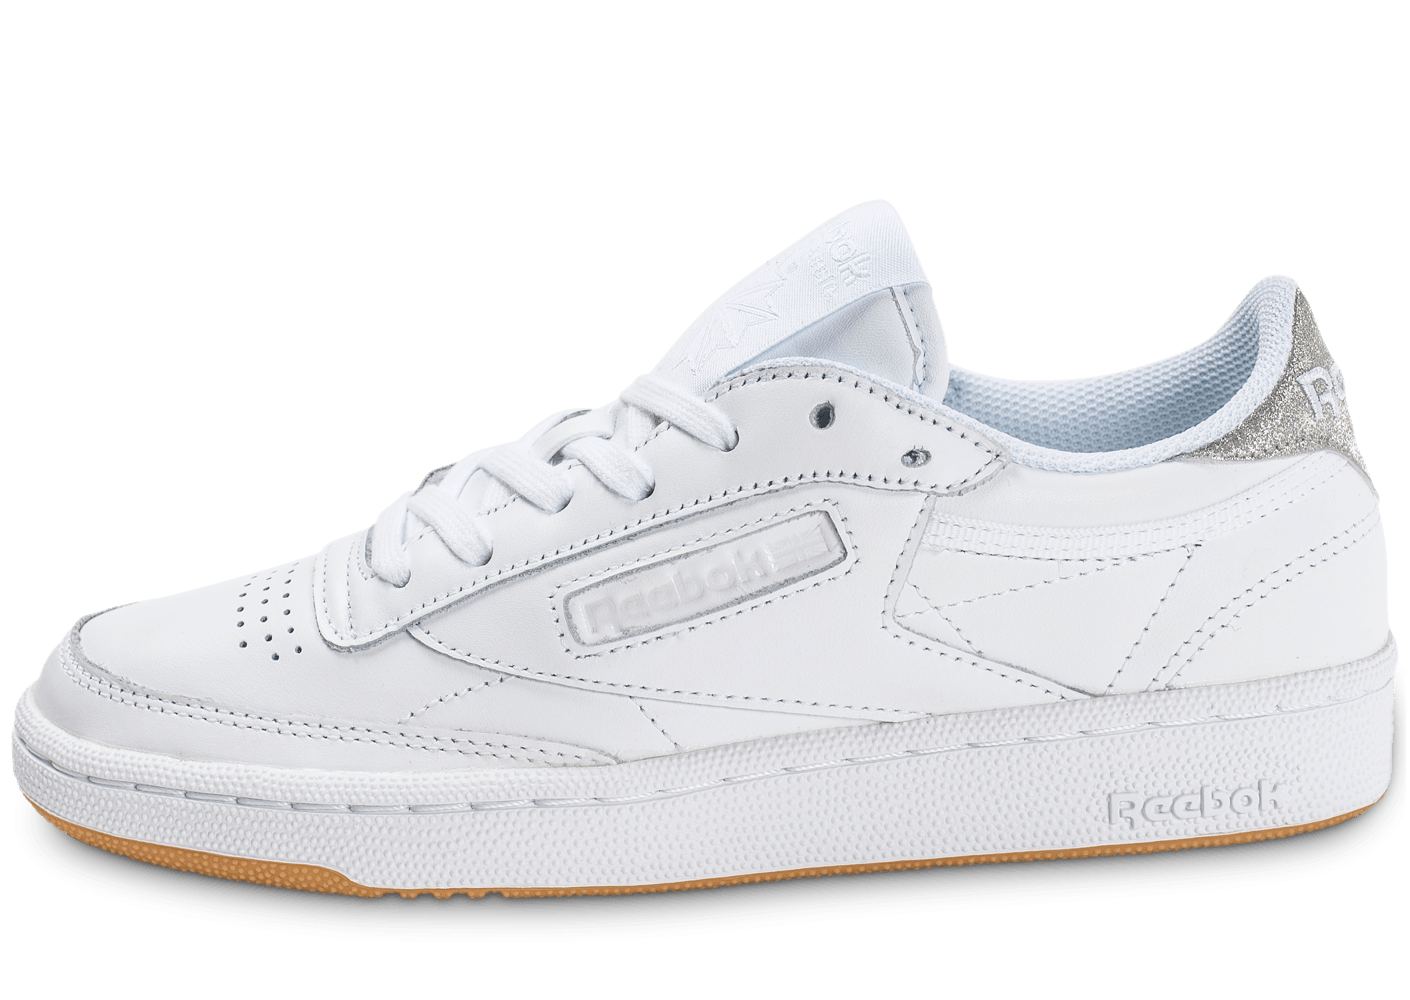 reebok club c 85 diamond blanche chaussures femme. Black Bedroom Furniture Sets. Home Design Ideas